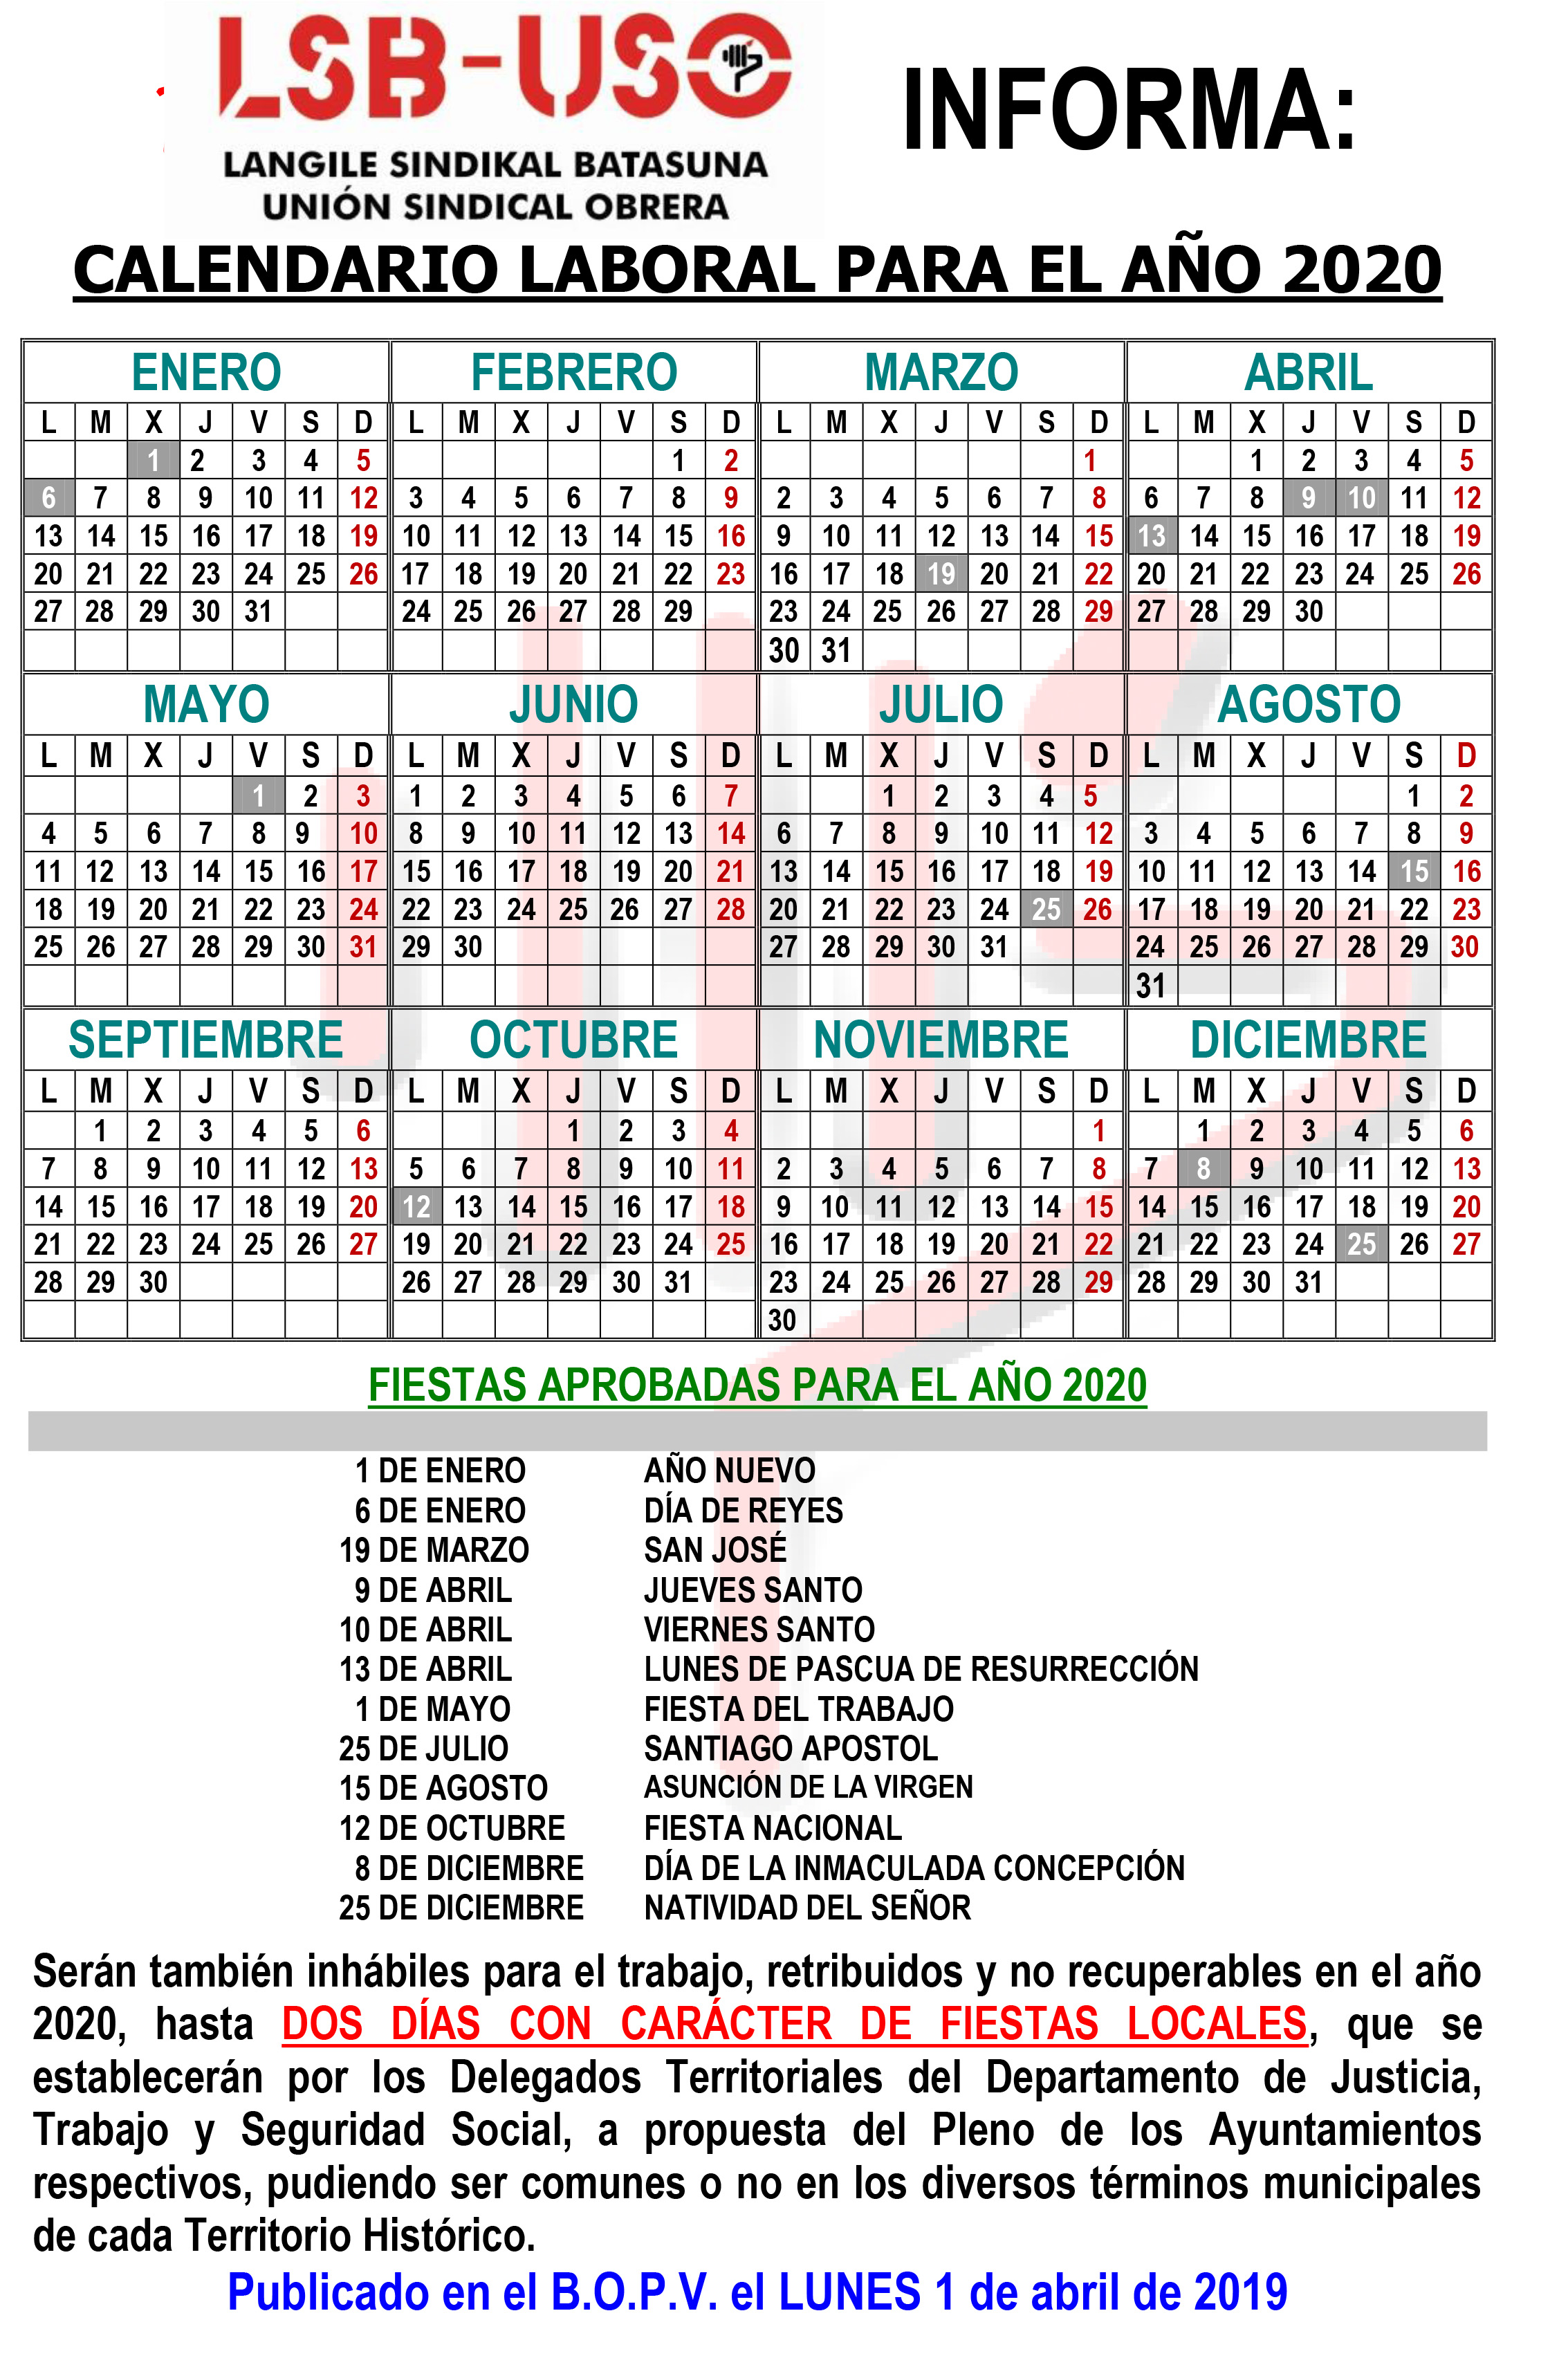 Calendario Laboral 2020 Madrid Ugt.Calendario Laboral Lsb Uso